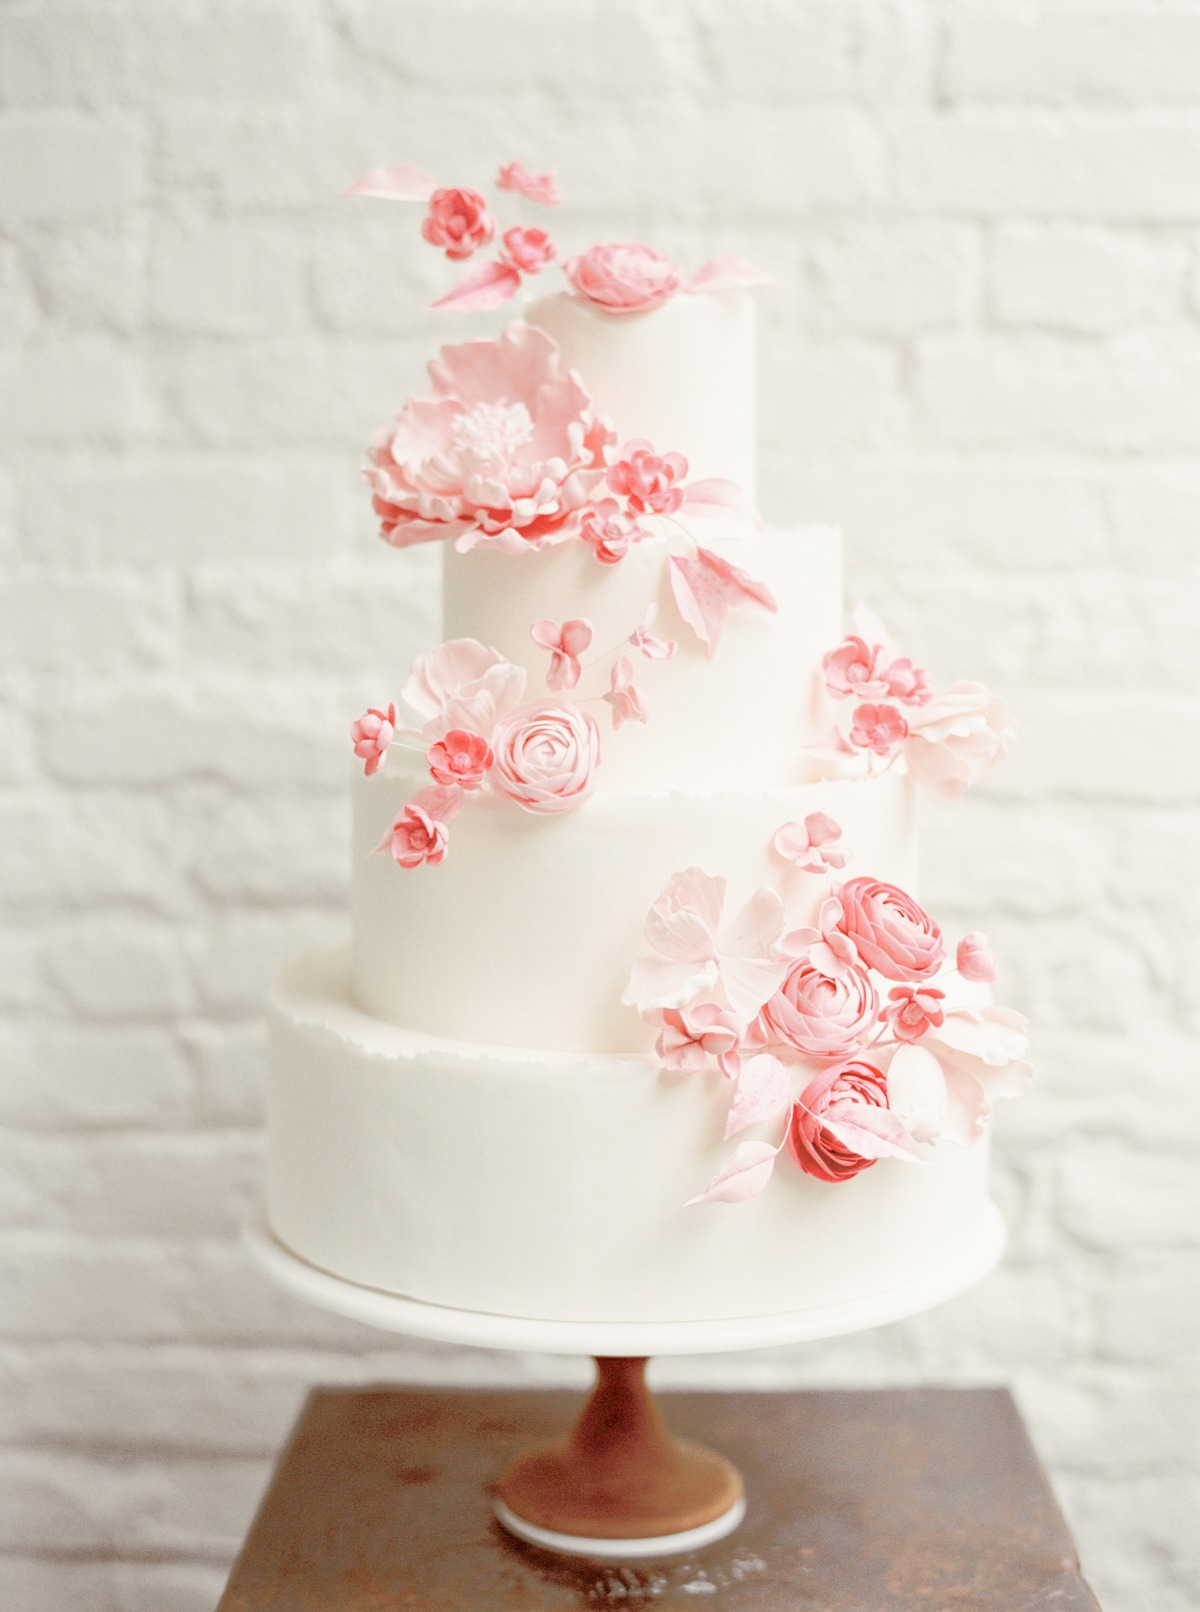 White wedding cake with pink flowers